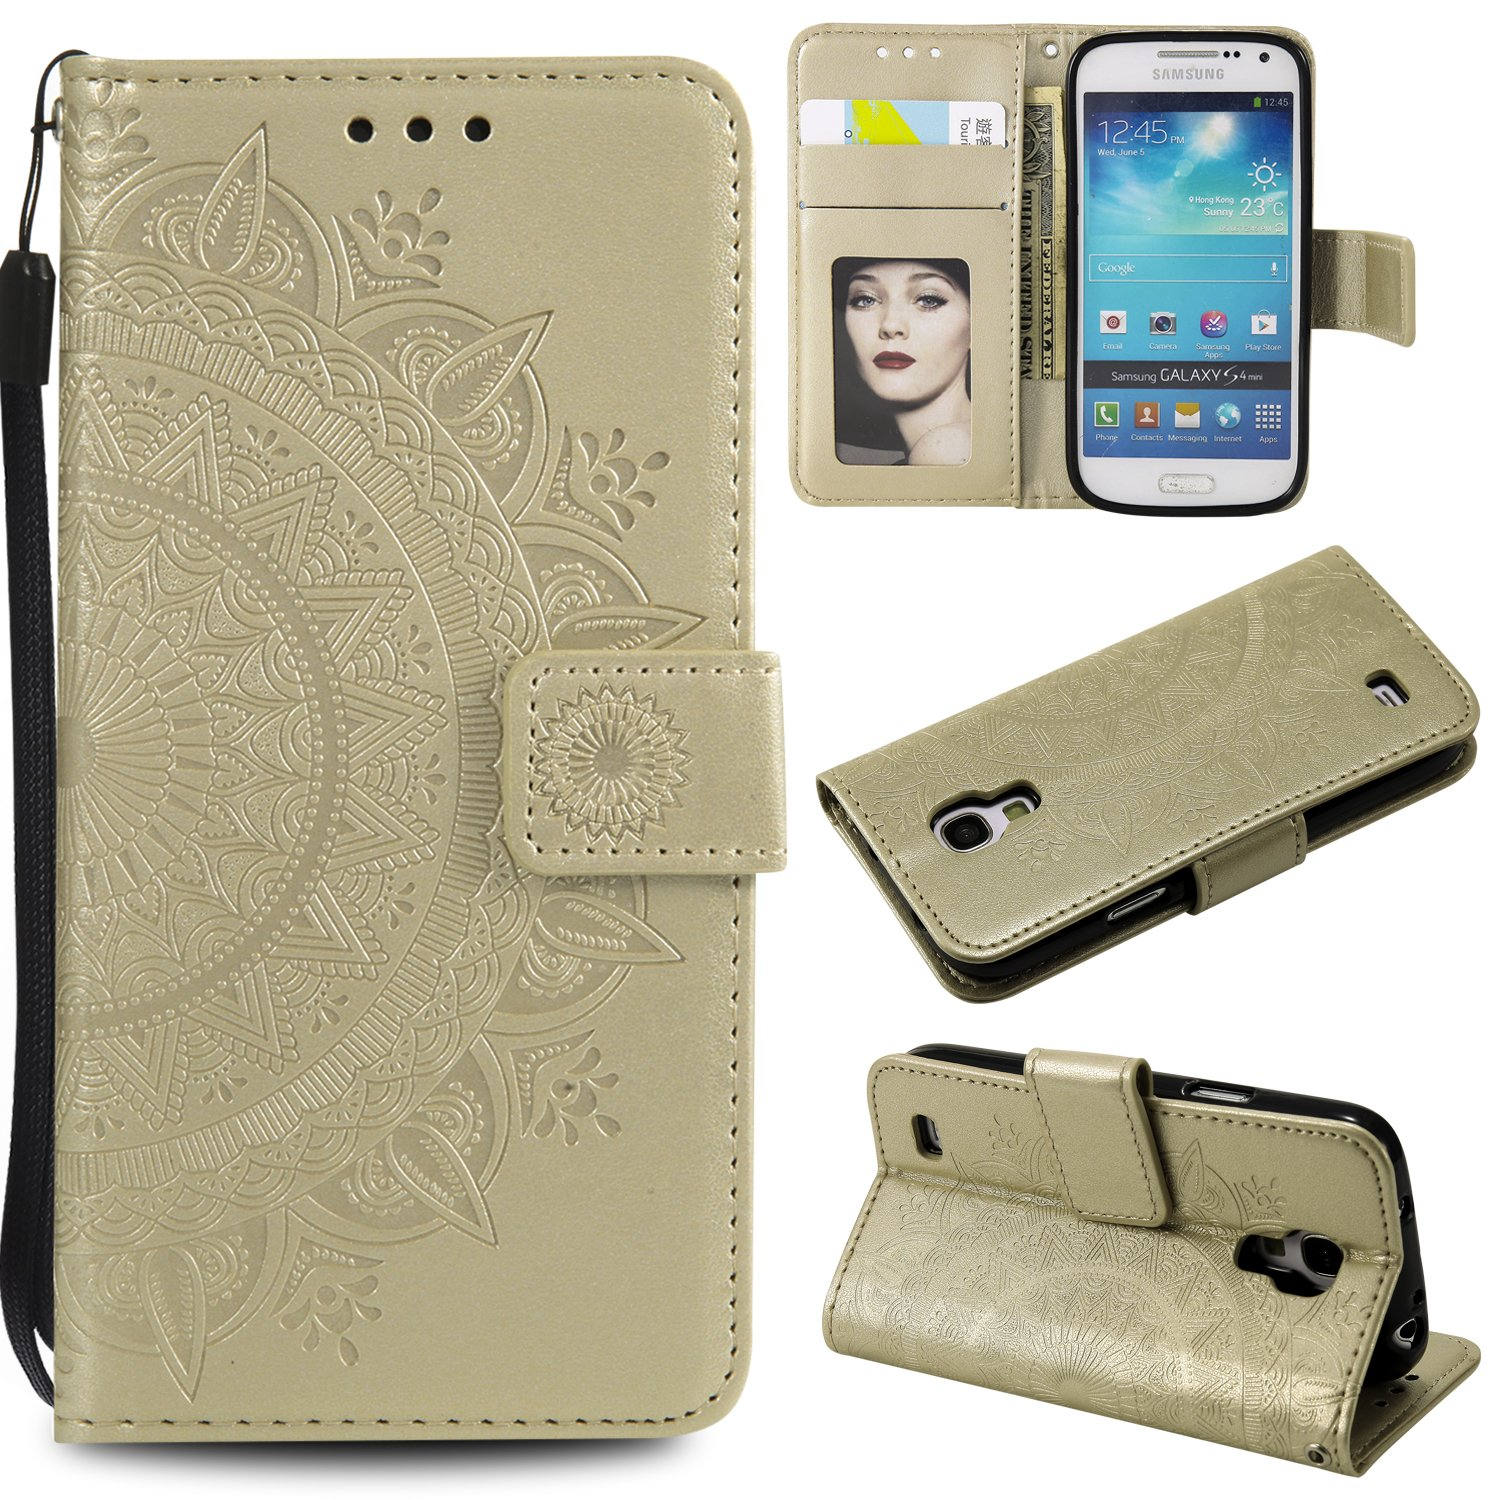 Galaxy S4 Mini Floral Wallet Case,Galaxy S4 Mini Strap Flip Case,Leecase Embossed Totem Flower Design Pu Leather Bookstyle Stand Flip Case for Samsung Galaxy S4 Mini-Gold